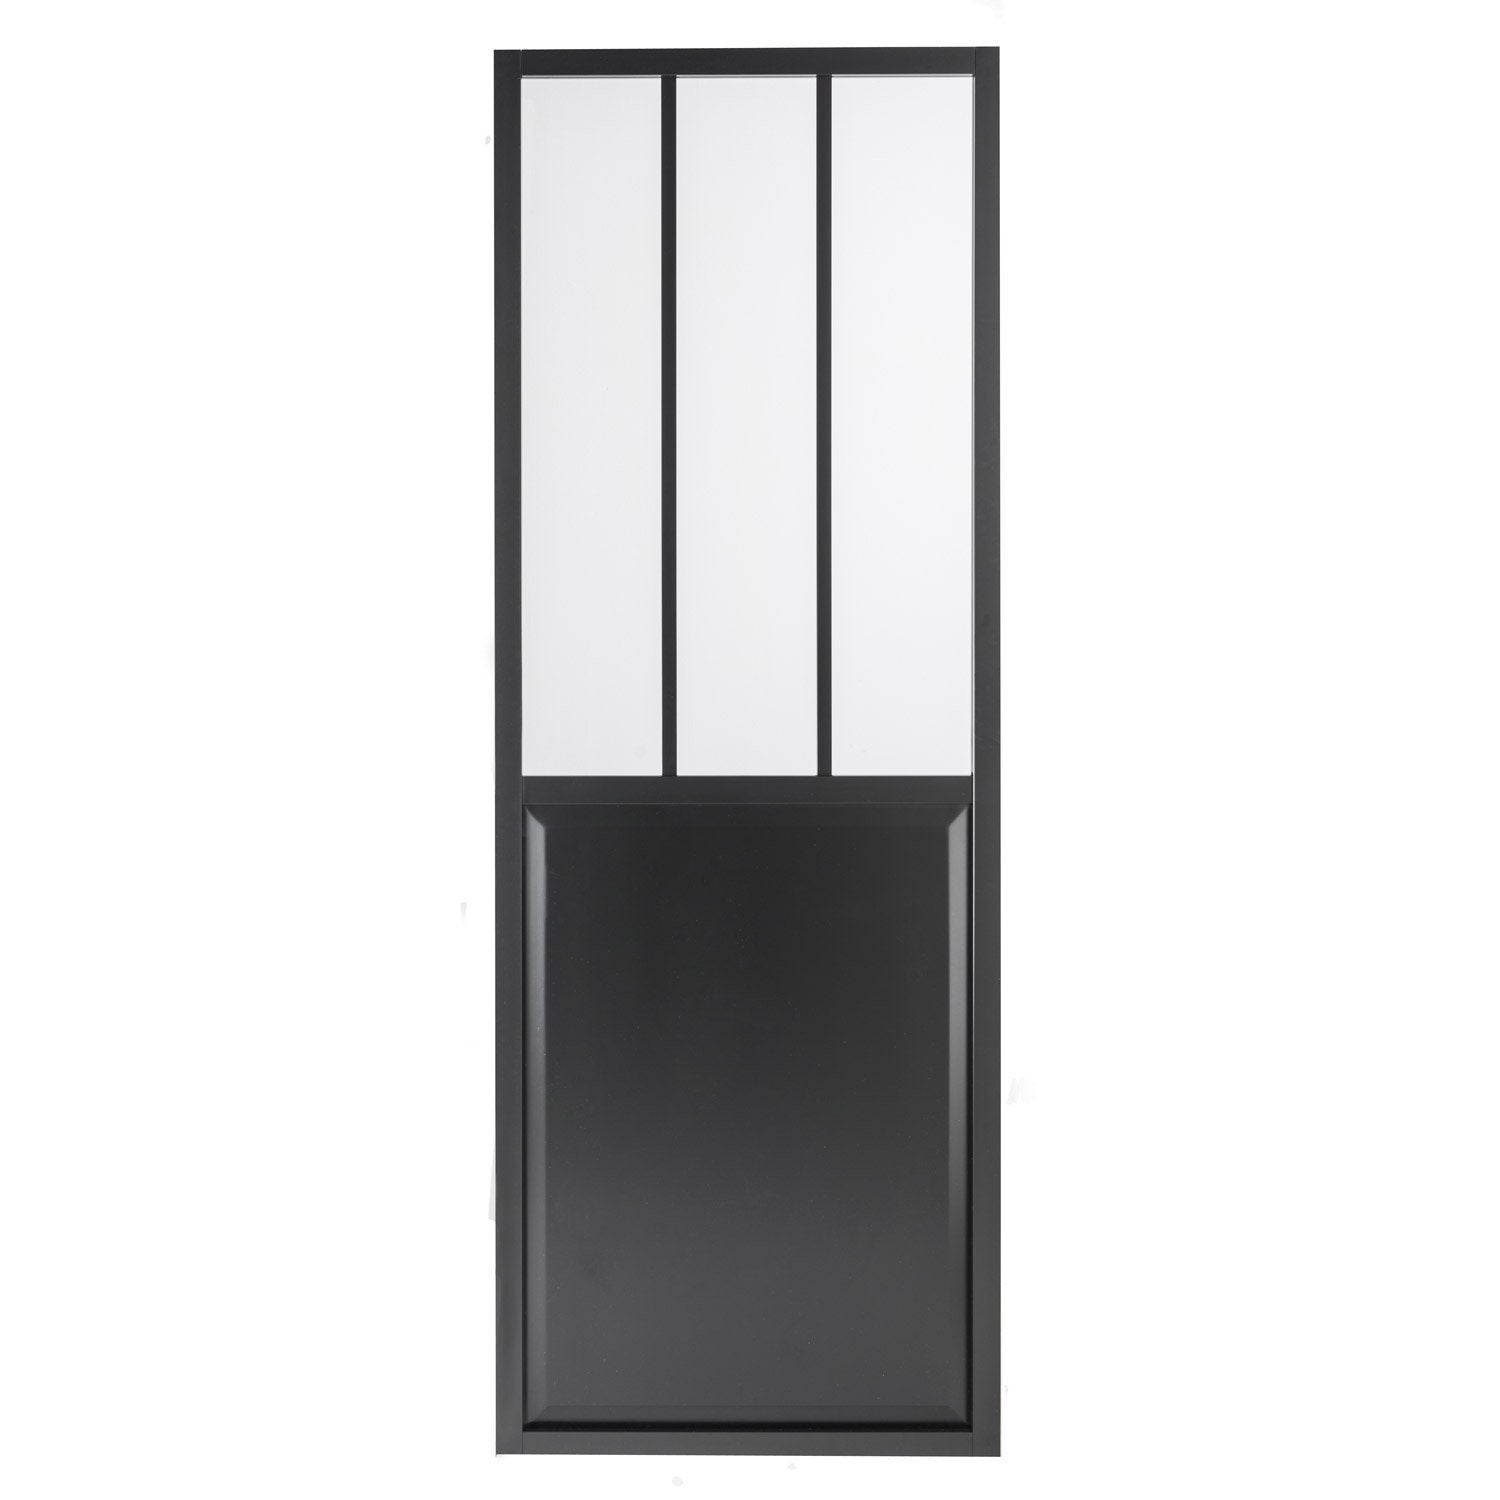 Porte coulissante aluminium noir atelier verre clair for Porte 3 points leroy merlin